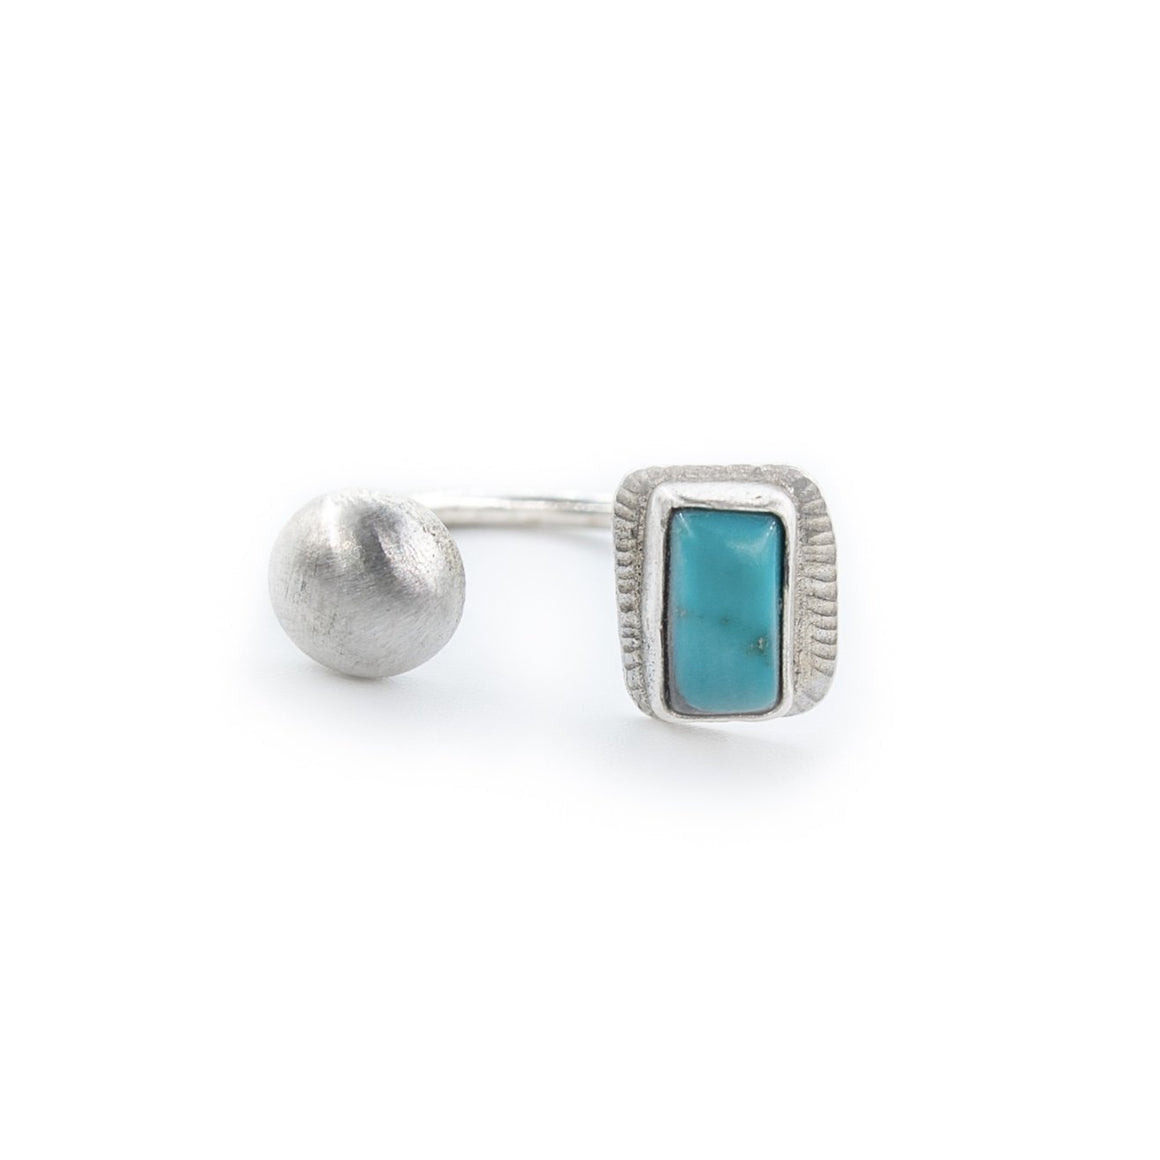 Sierra Nevada Turquoise Open Ring by Original Sin Jewelry